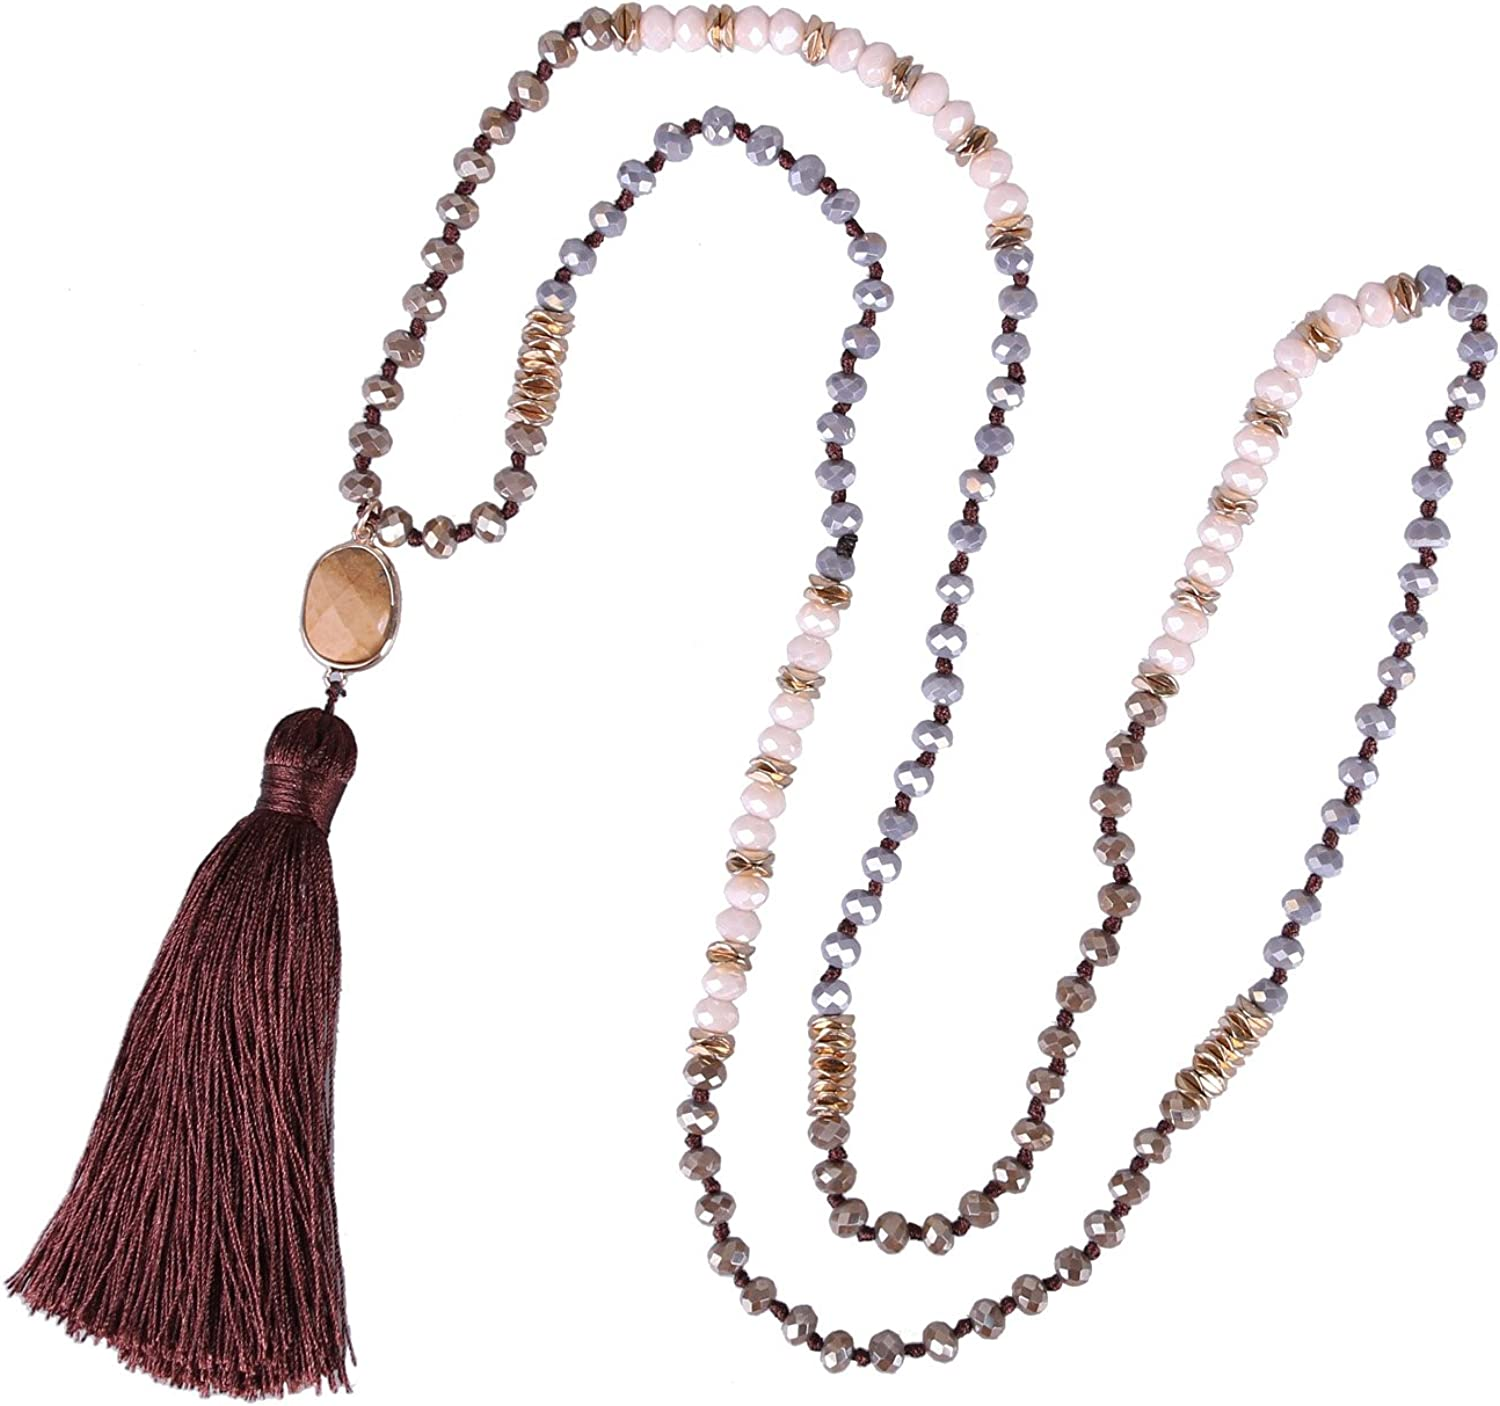 KELITCH Crystal Beaded Necklaces Handmade Tassel Pendant Necklaces for Women Sautoir Necklaces Summer Jewelry